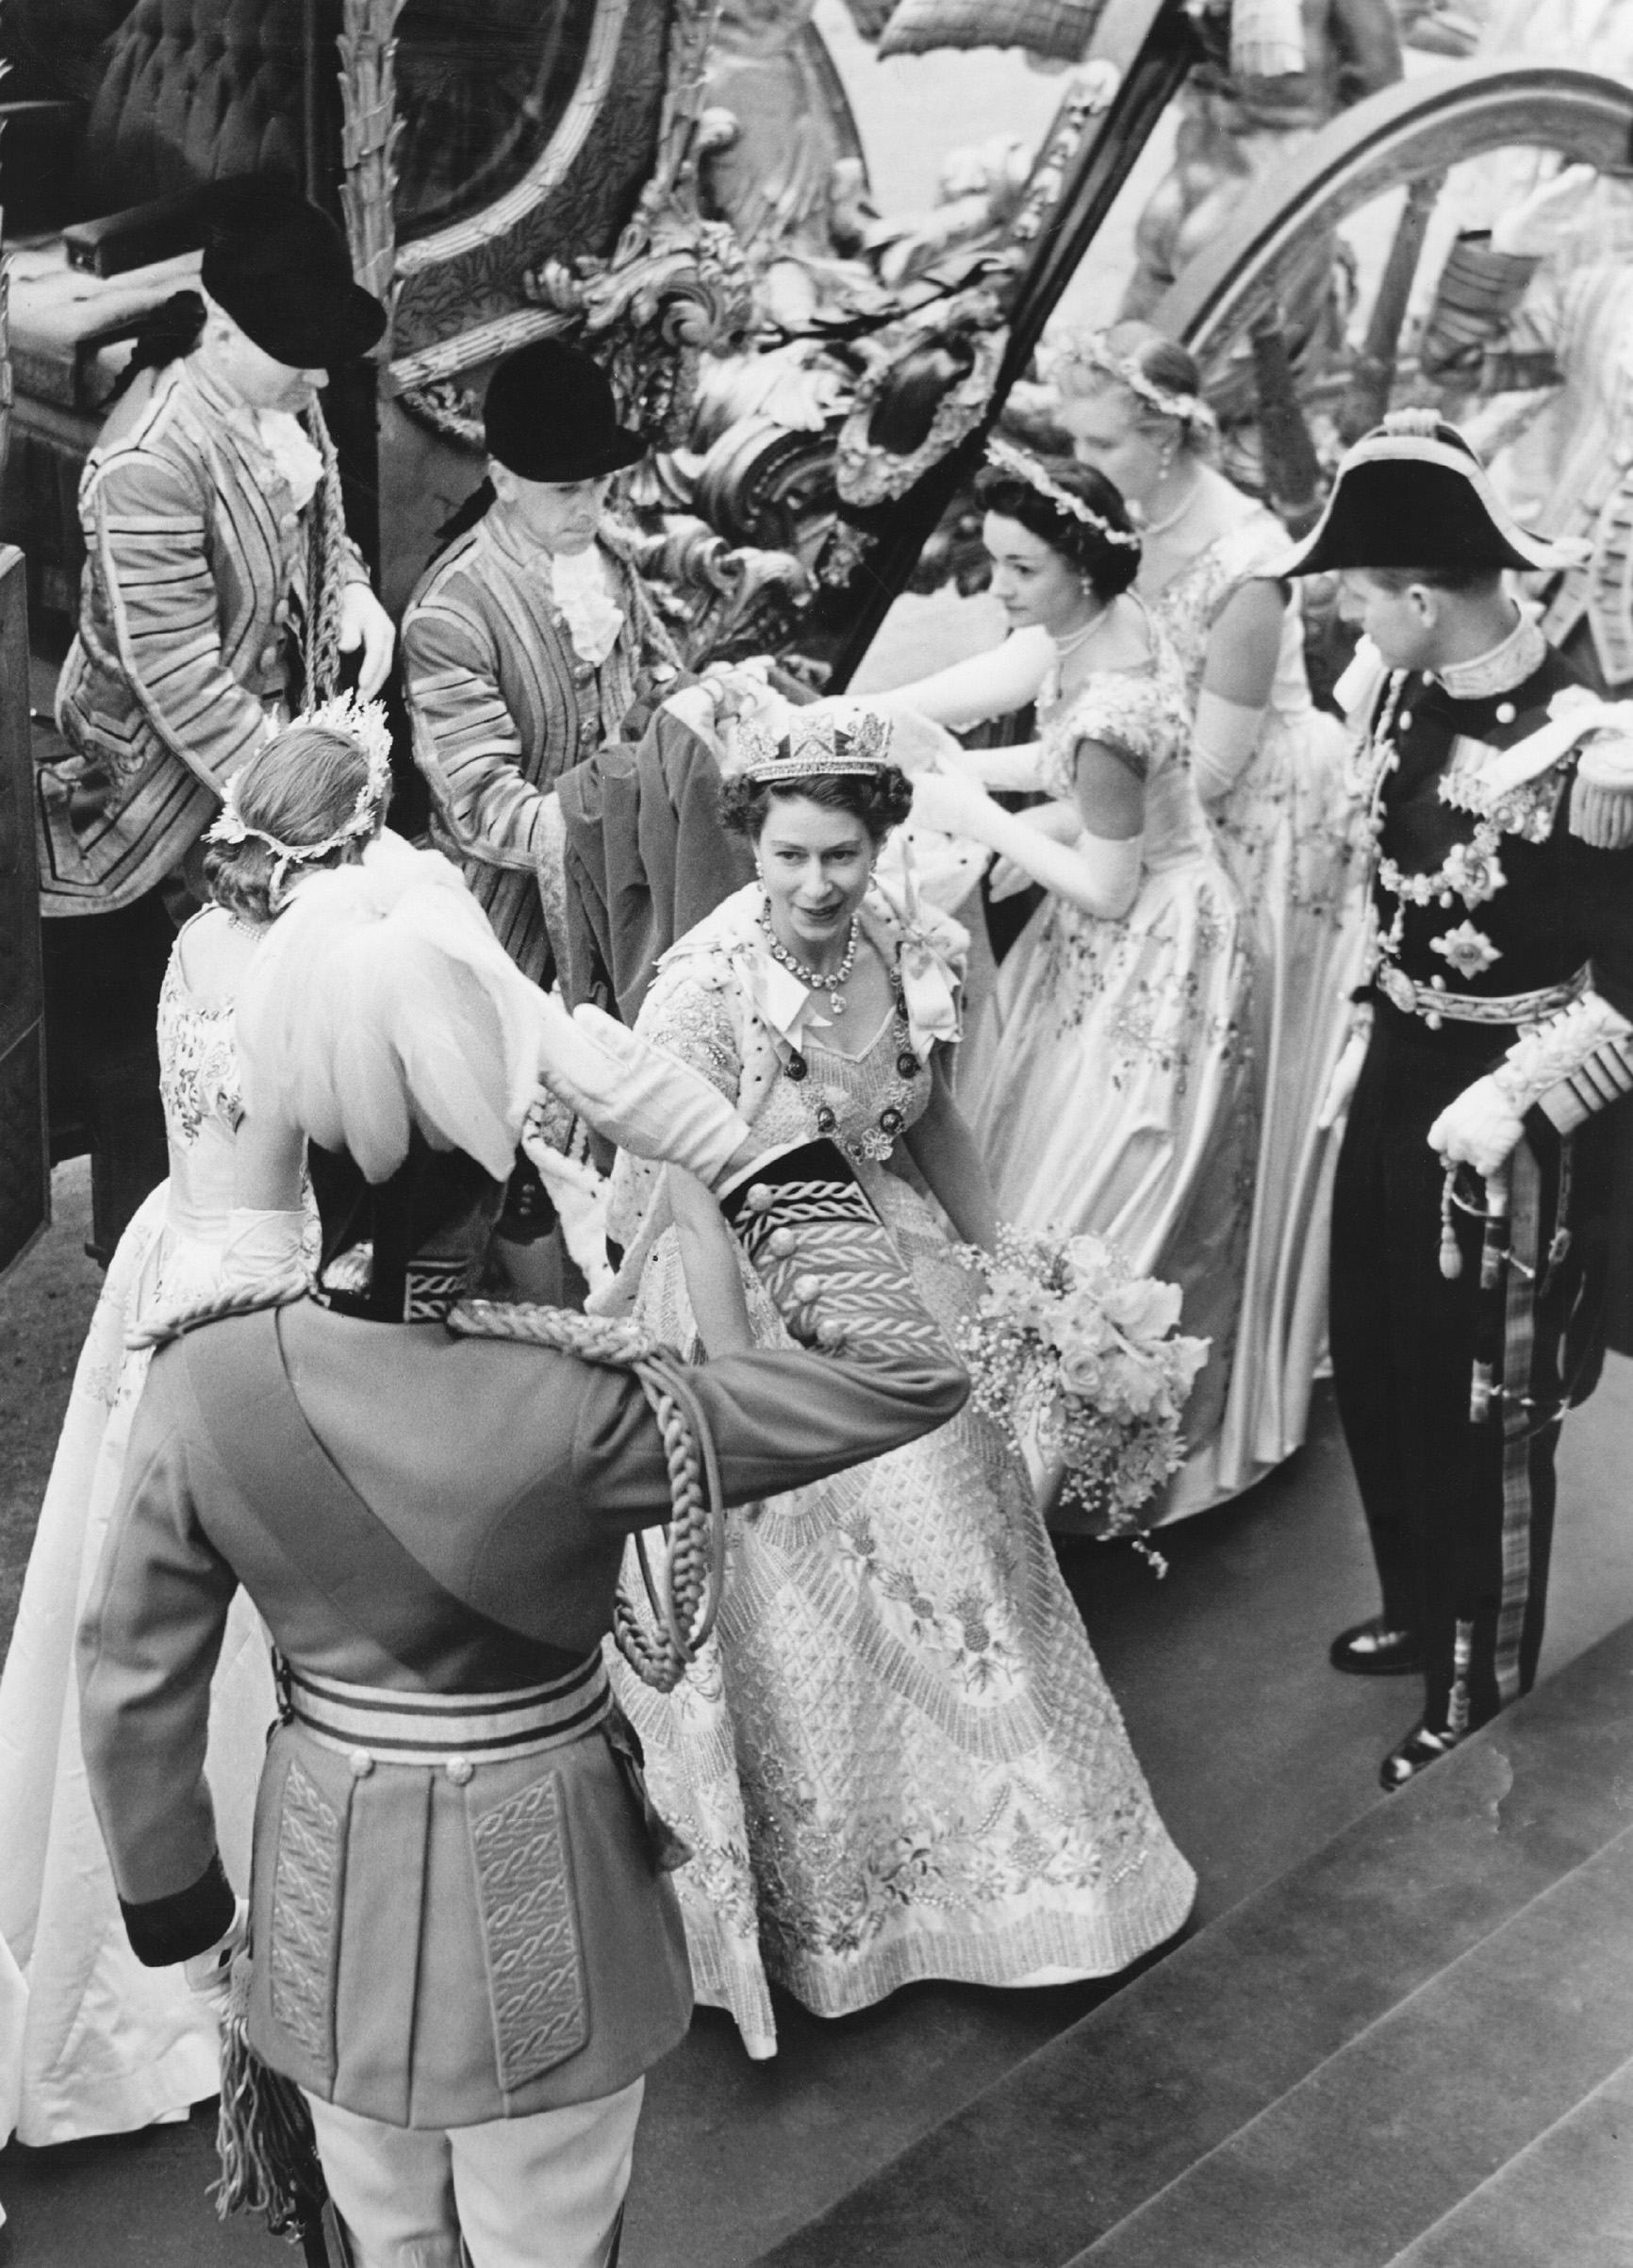 Queen Elizabeth II receives a salute from one of The Life Guards as her royal attendants help her out of her coach as she arrives to her coronation on June 2, 1953